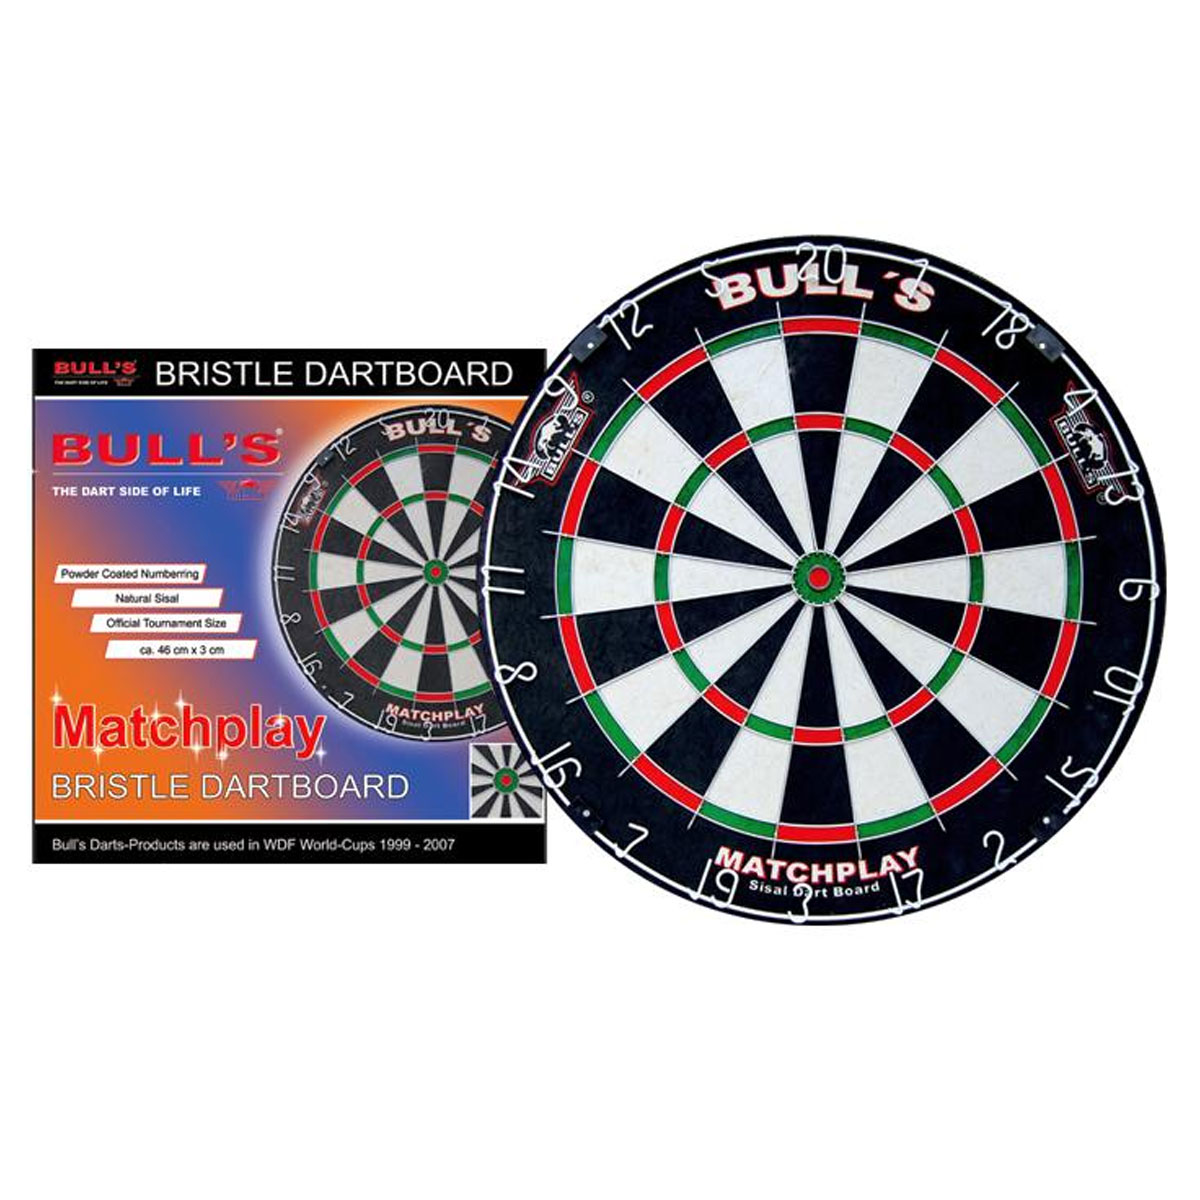 "Мишень для дартс Bull's ""Matchplay Bristle Board"", 46 см х 3 см"